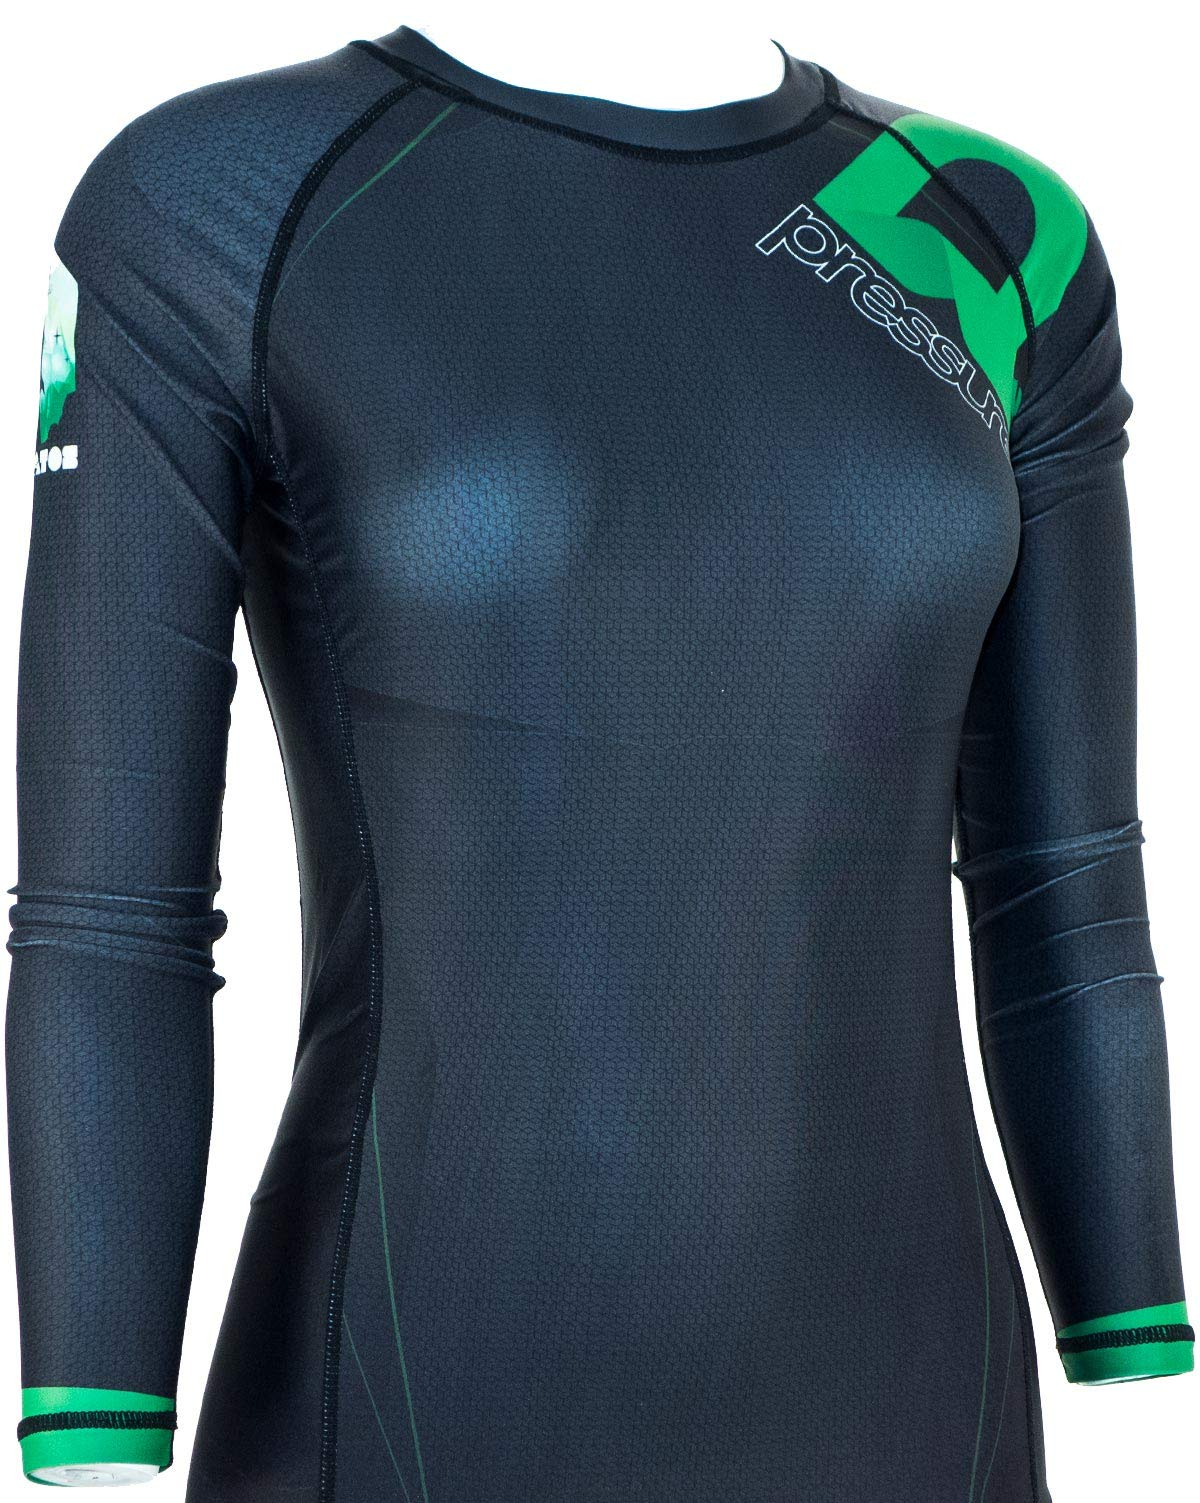 Pressure Grappling Women's Premium BJJ Long Sleeve Rash Guard with Lockdown Band (Stratos, Large) by Pressure Grappling